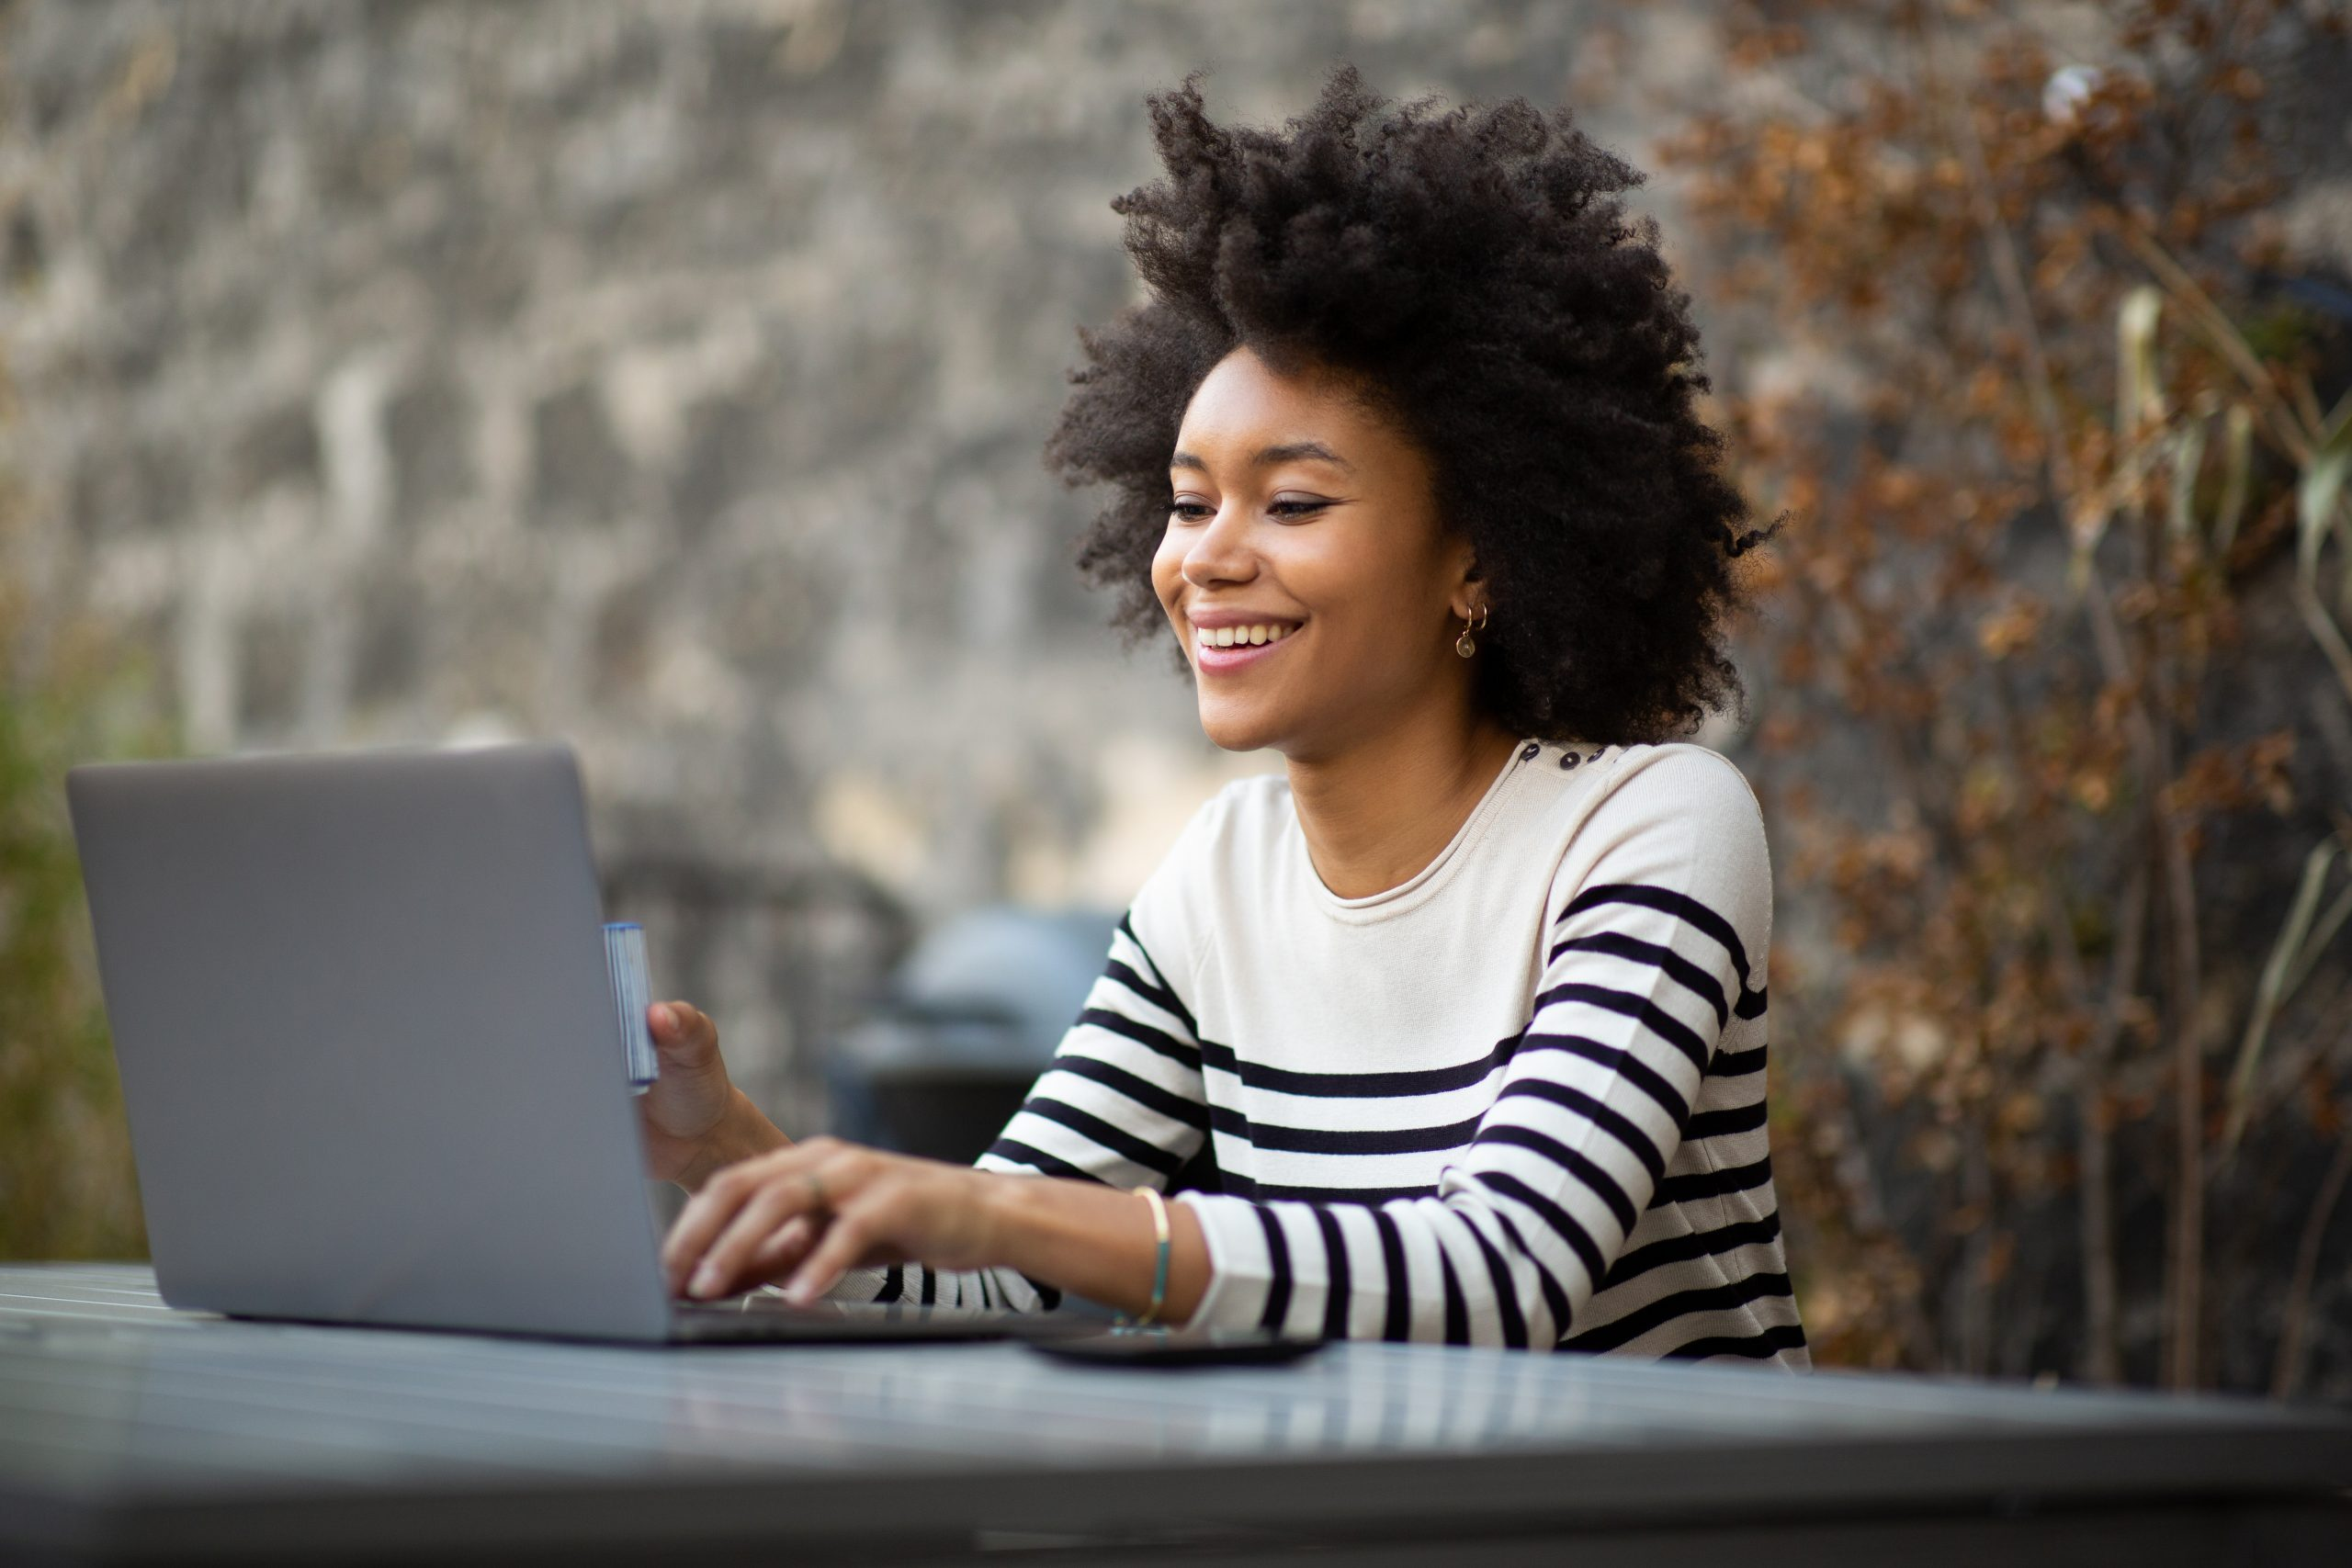 smiling young african american woman using laptop computer